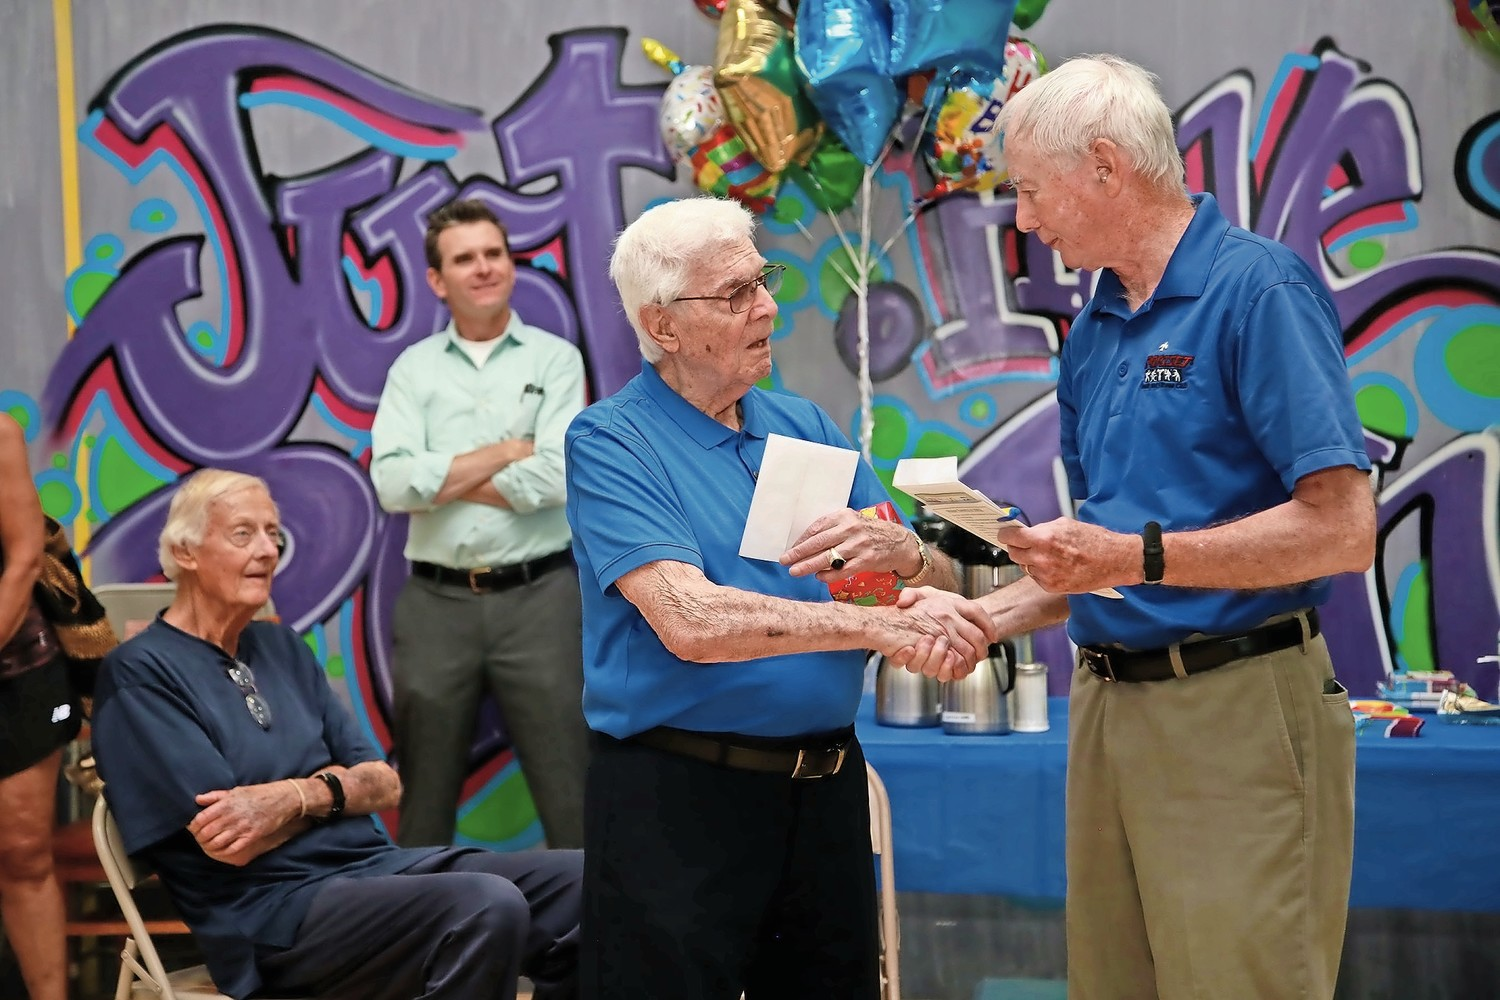 Friends Family Surprise 96 Year Old Gymgoer For Birthday Celebration At Sportset Fitness